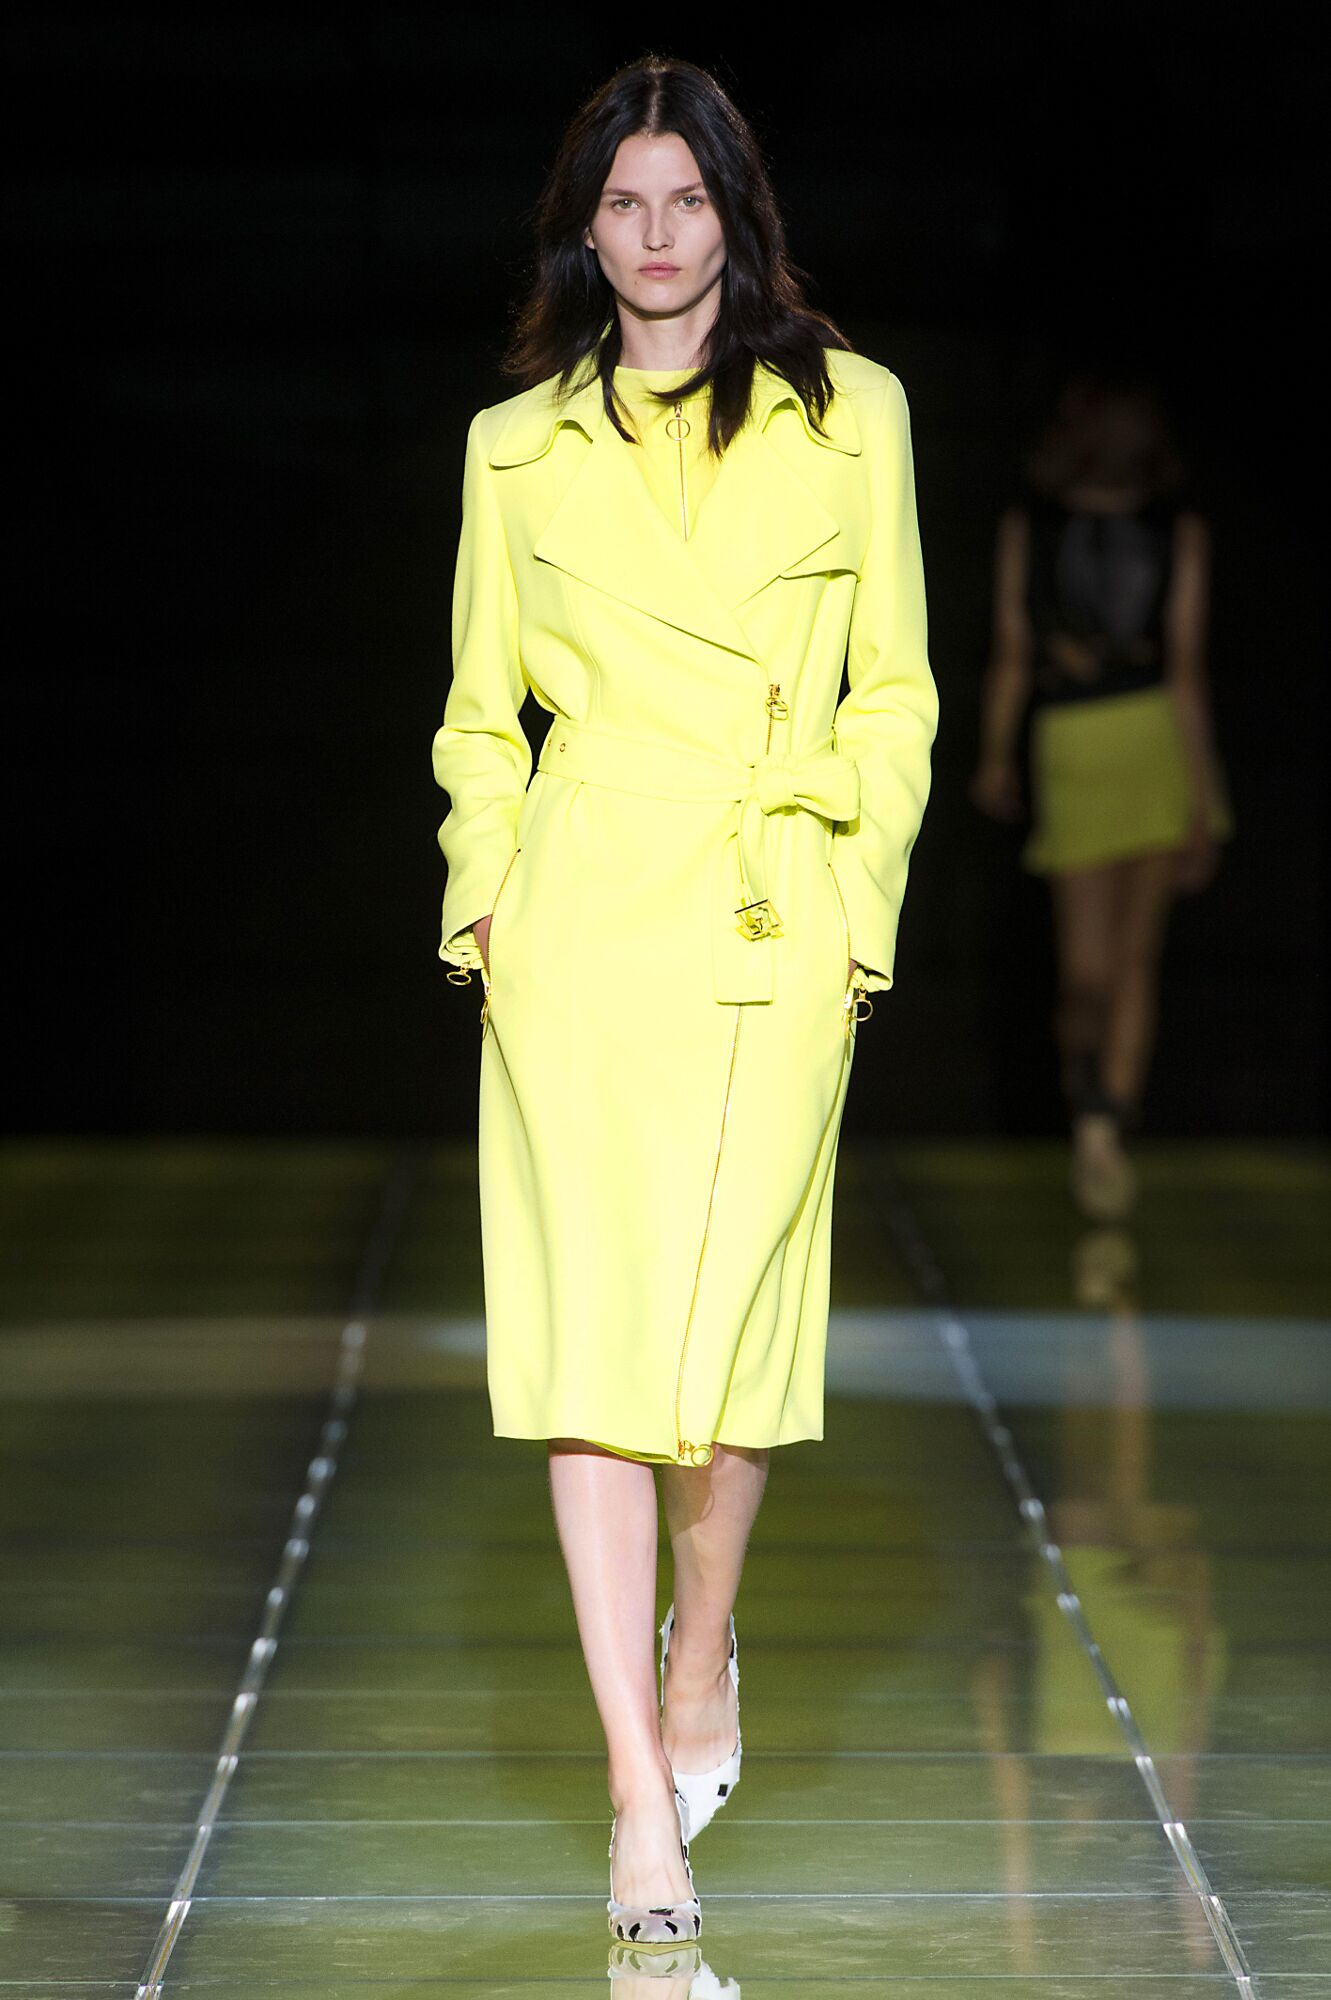 Summer Fashion Trends 2015 Fausto Puglisi